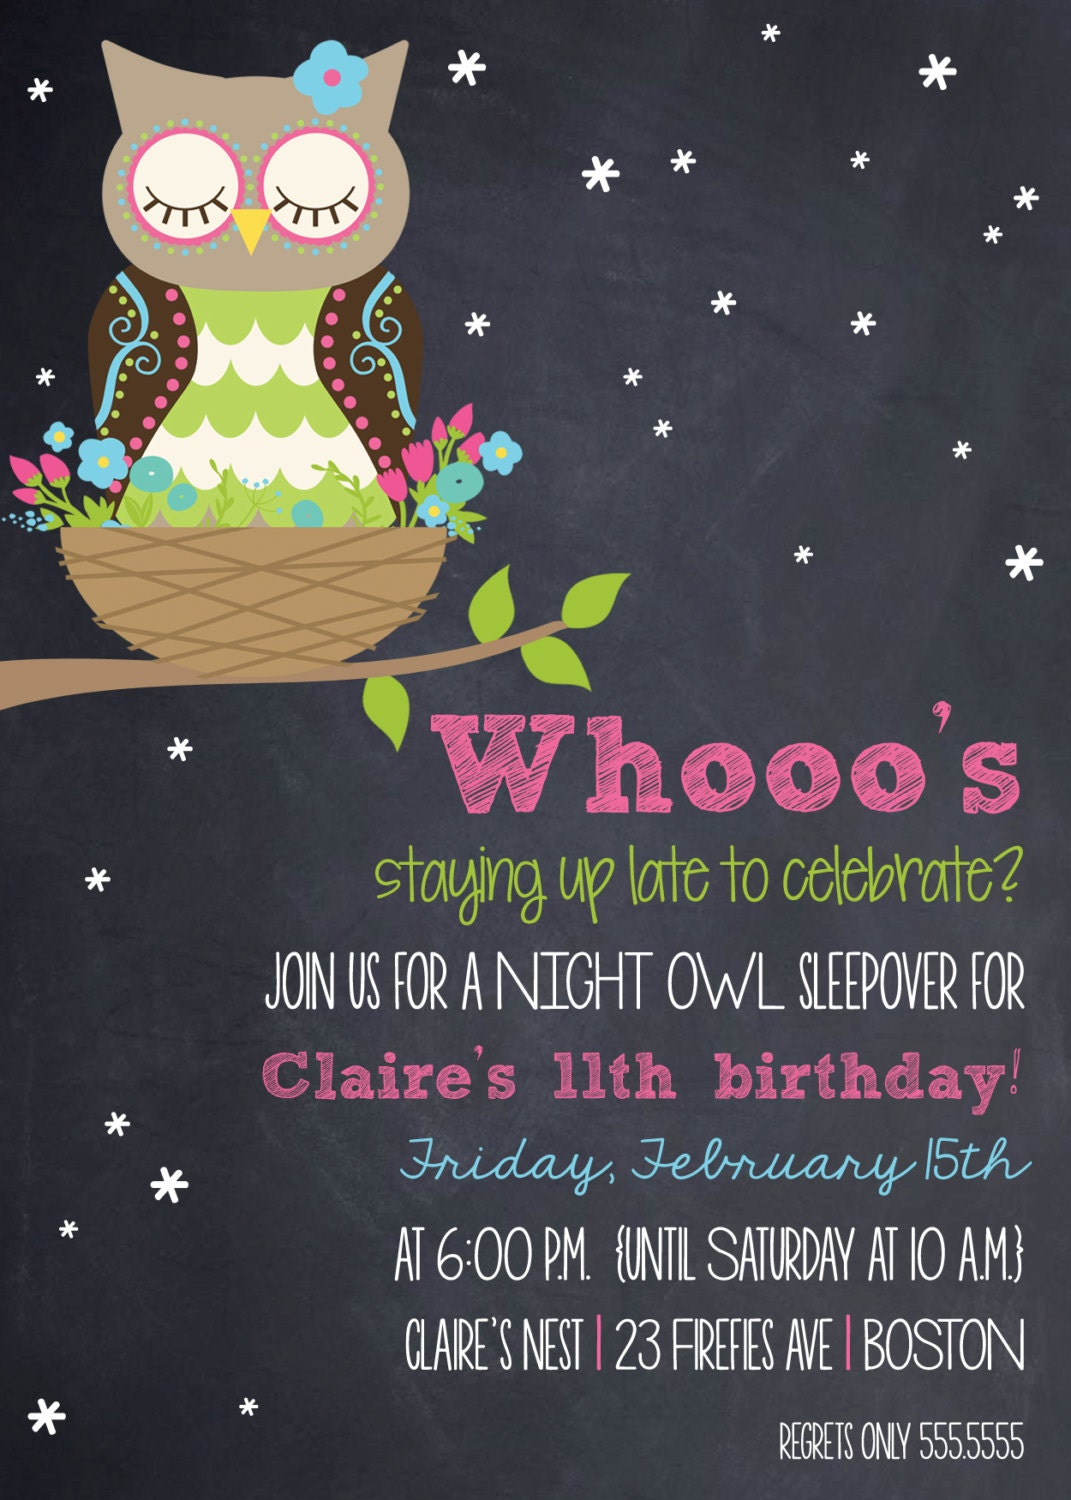 WOODLAND NIGHT OWL Sleepover Birthday Invitation Printable